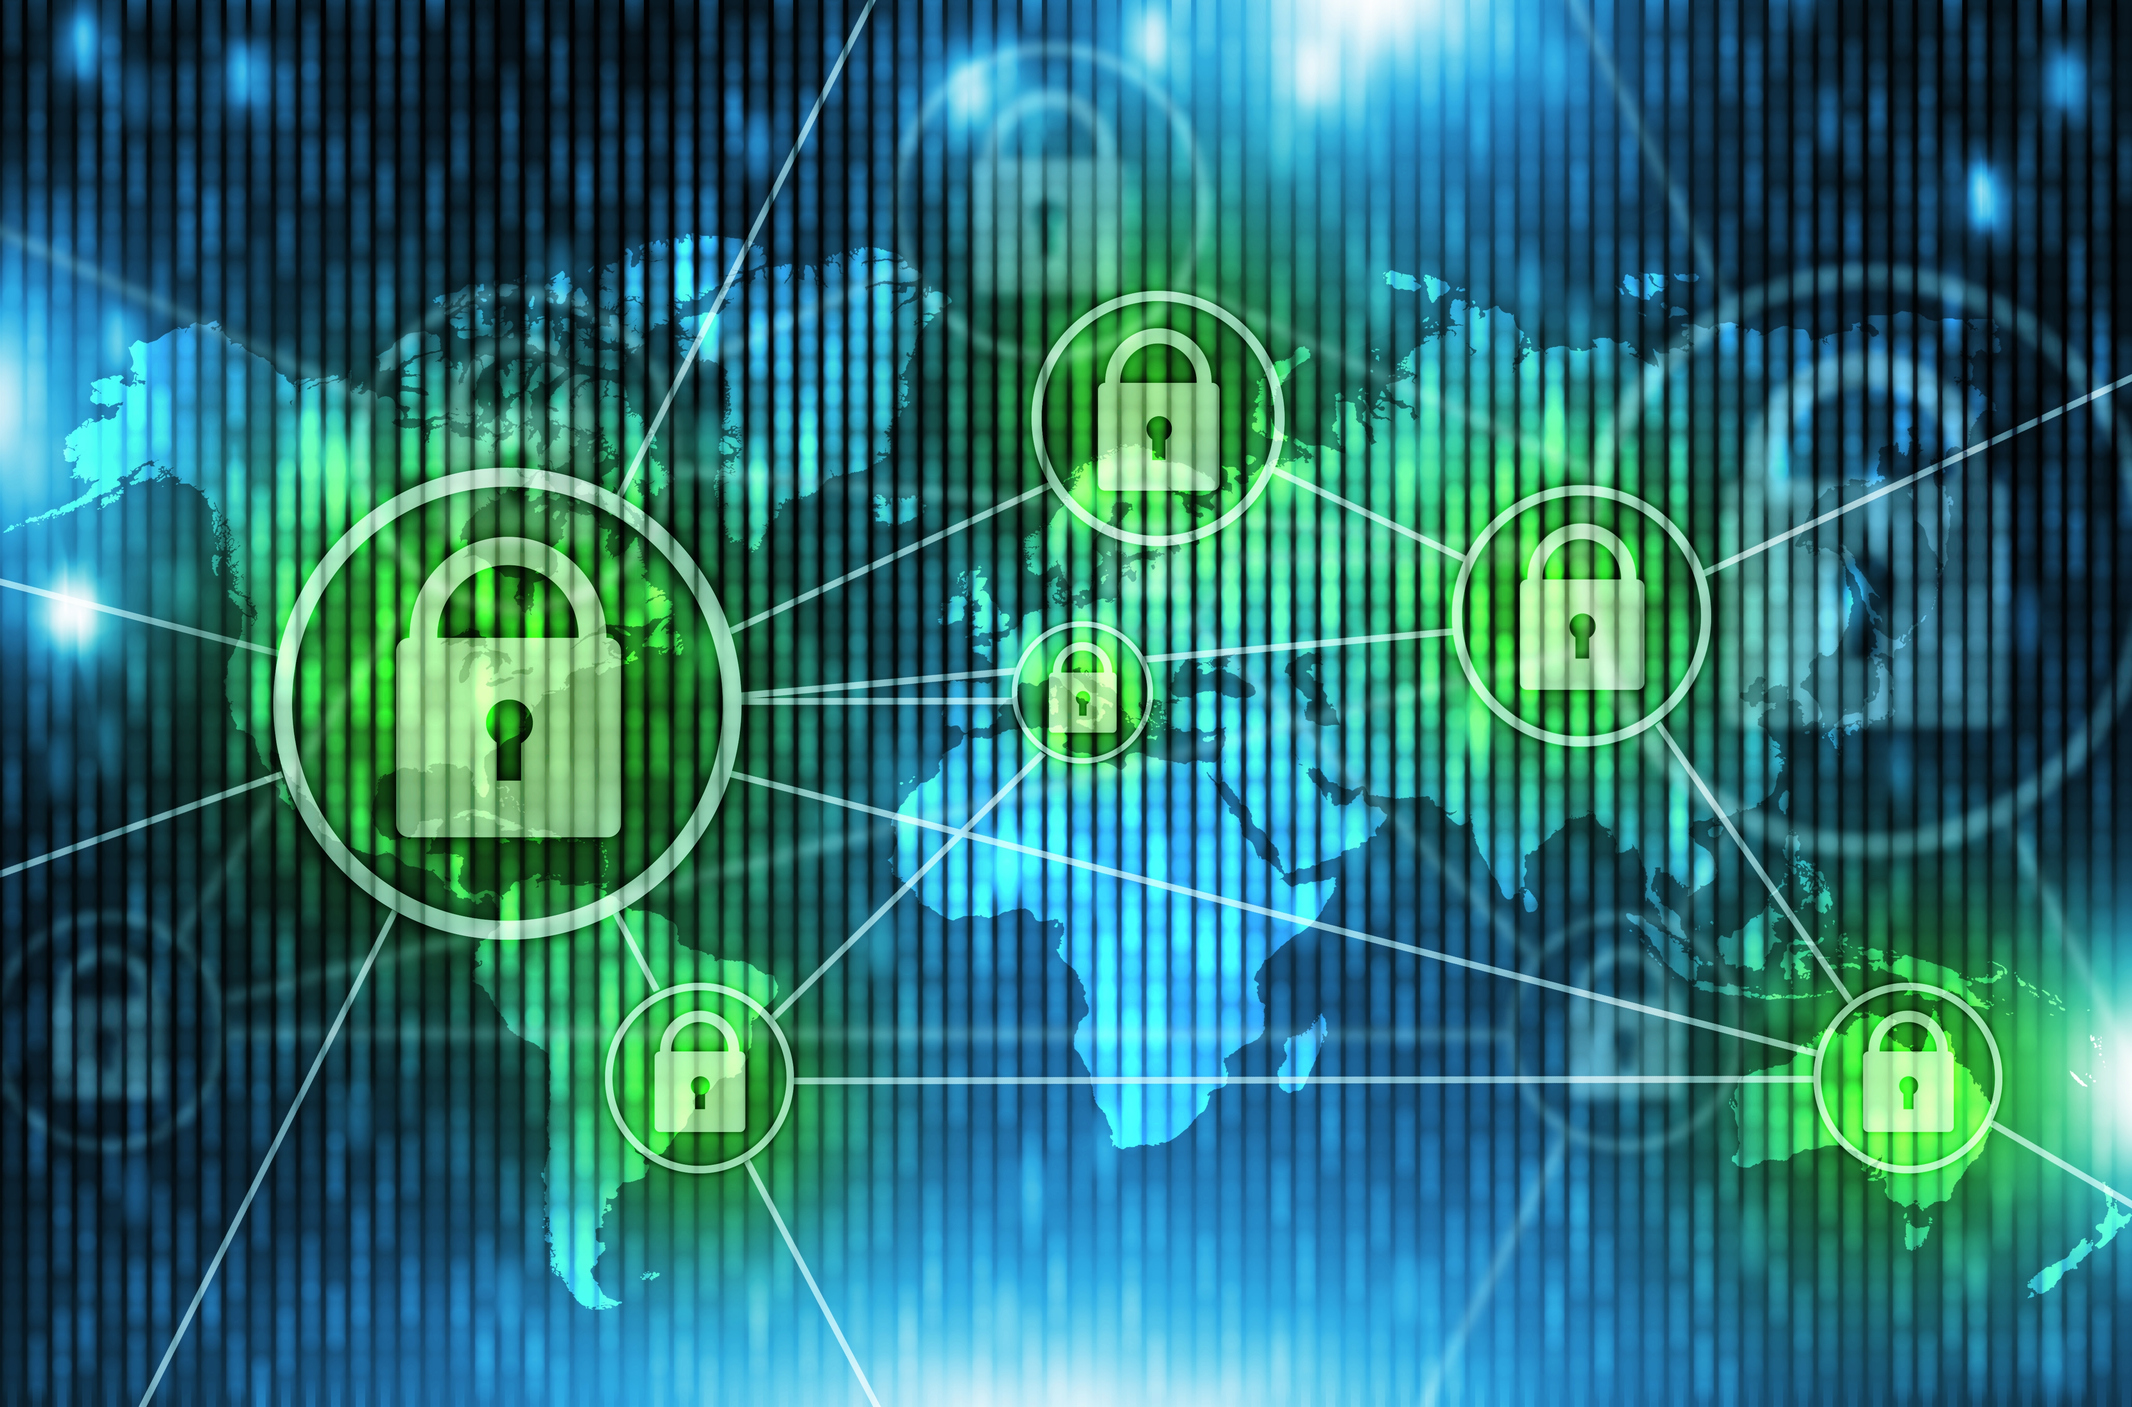 Penetration Testing Helps with Compliance for SOC 2, PCI, and HIPAA